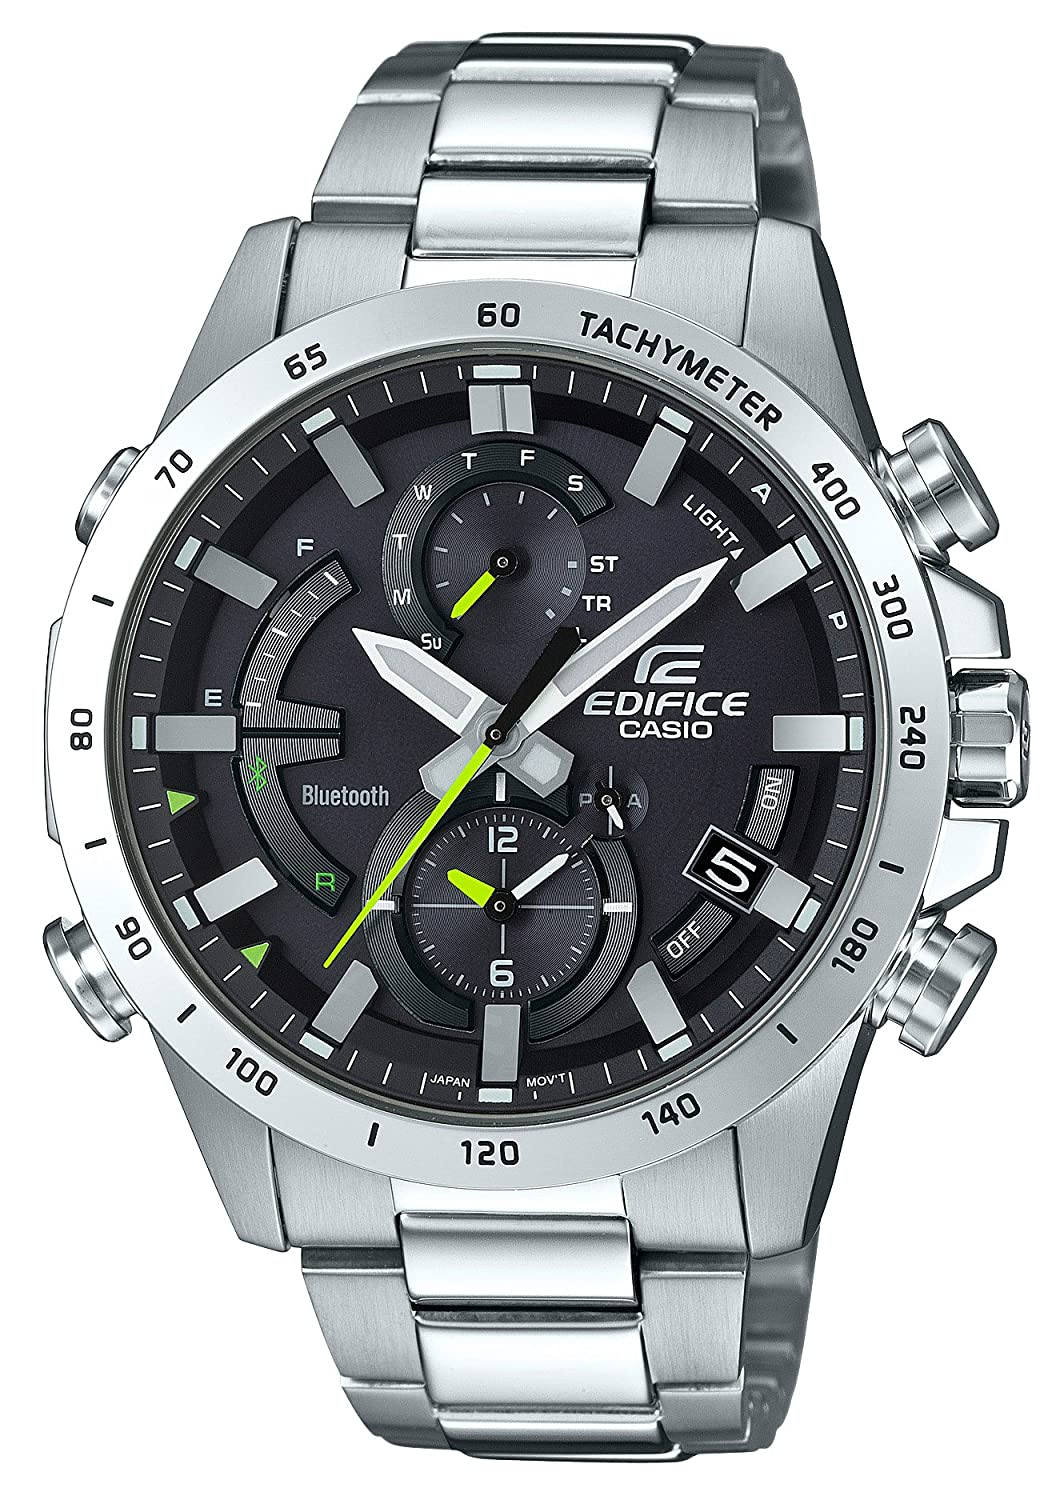 dca43eed9c9e Amazon.com  EDIFICE EQB-900D-1AJF  Solar watch with Bluetooth  Japan  Import  Watches